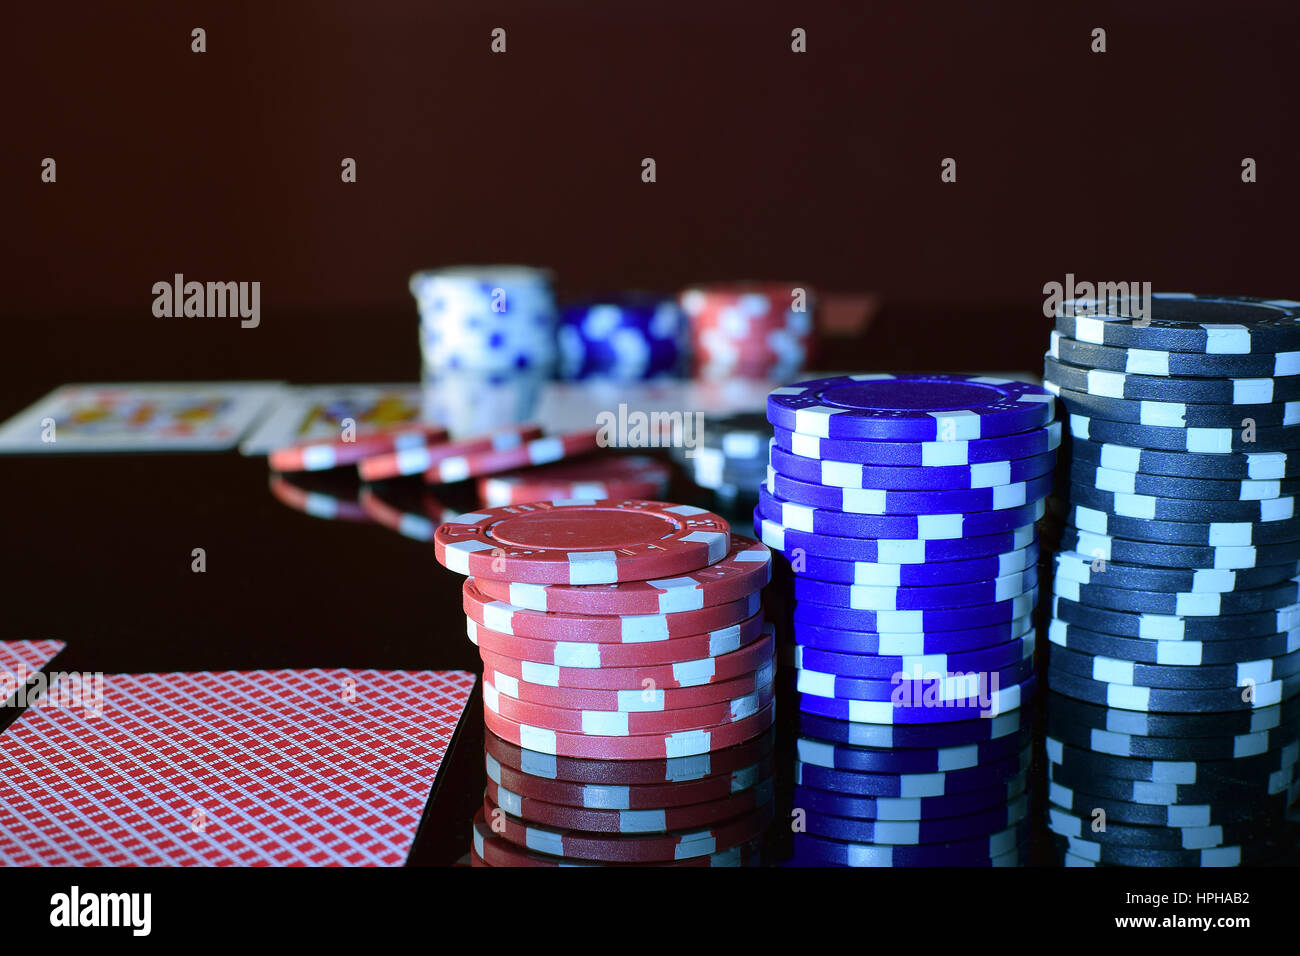 Craps payouts and odds